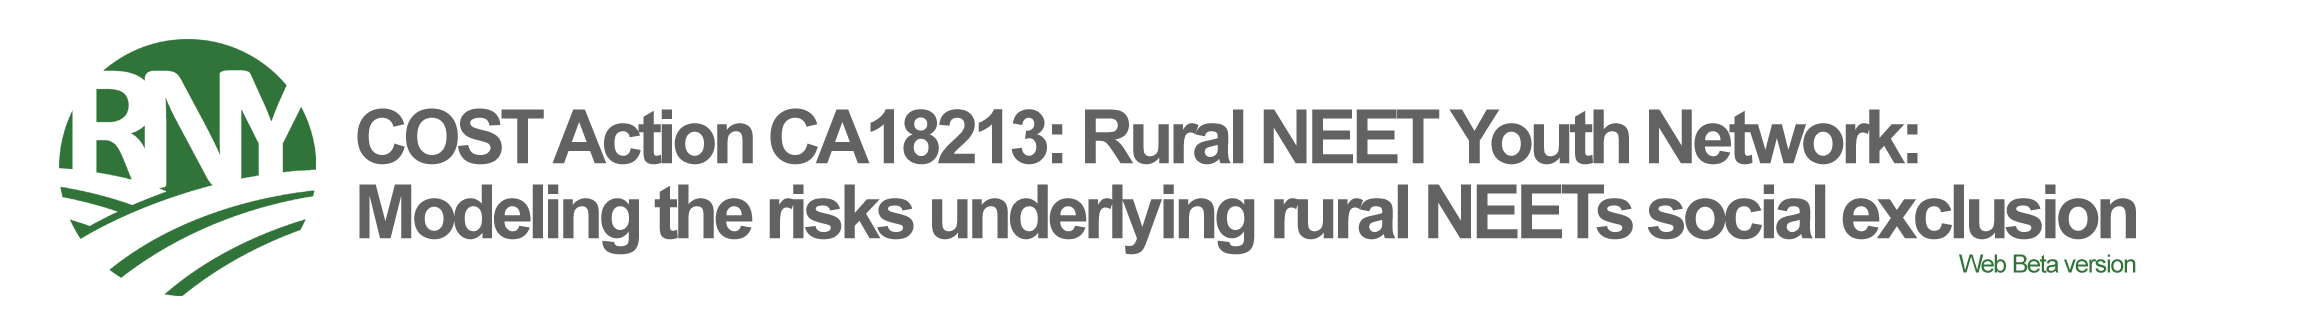 Rural NEET Youth Observatory - COST Action CA18213